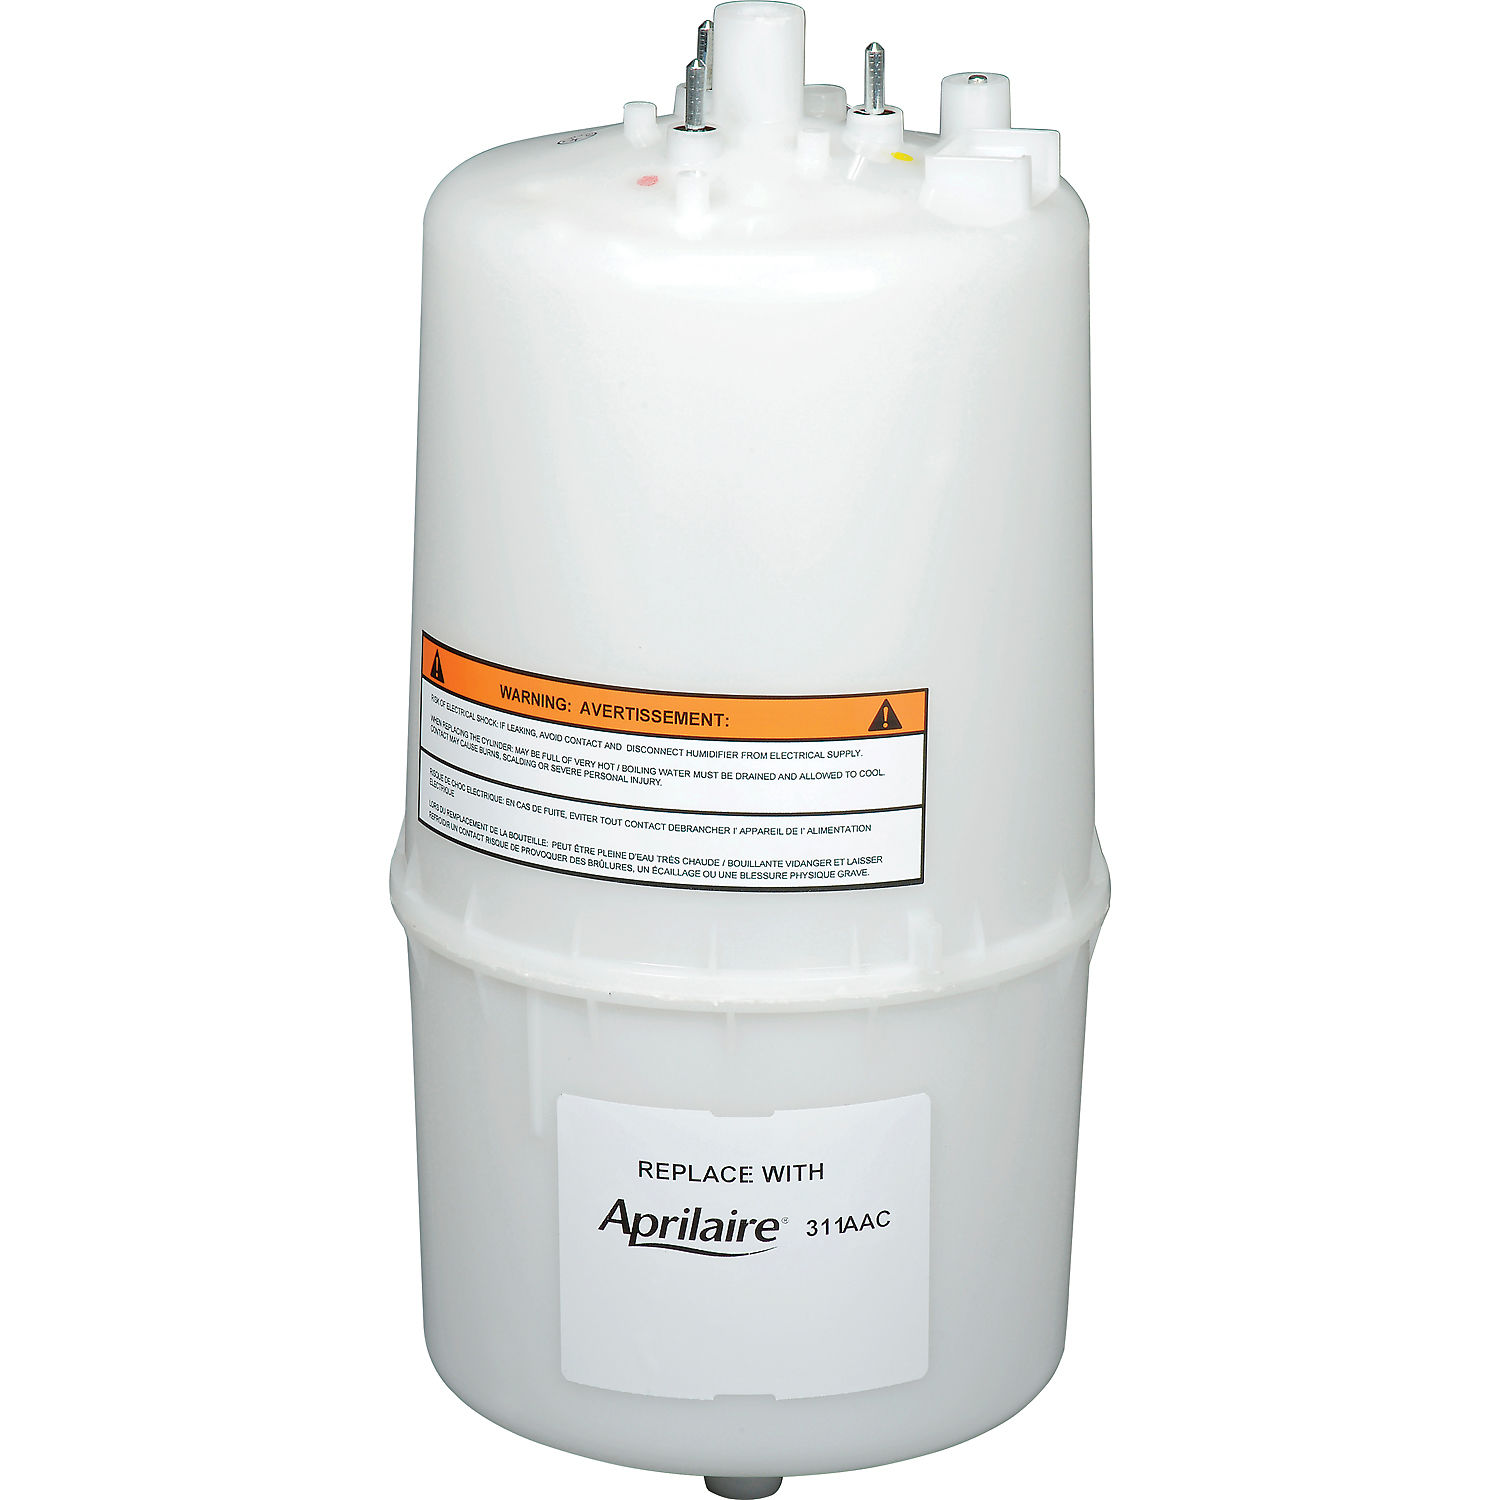 Aprilaire Replacement Steam Cylinder 311AAC, For Nortec Humidifiers